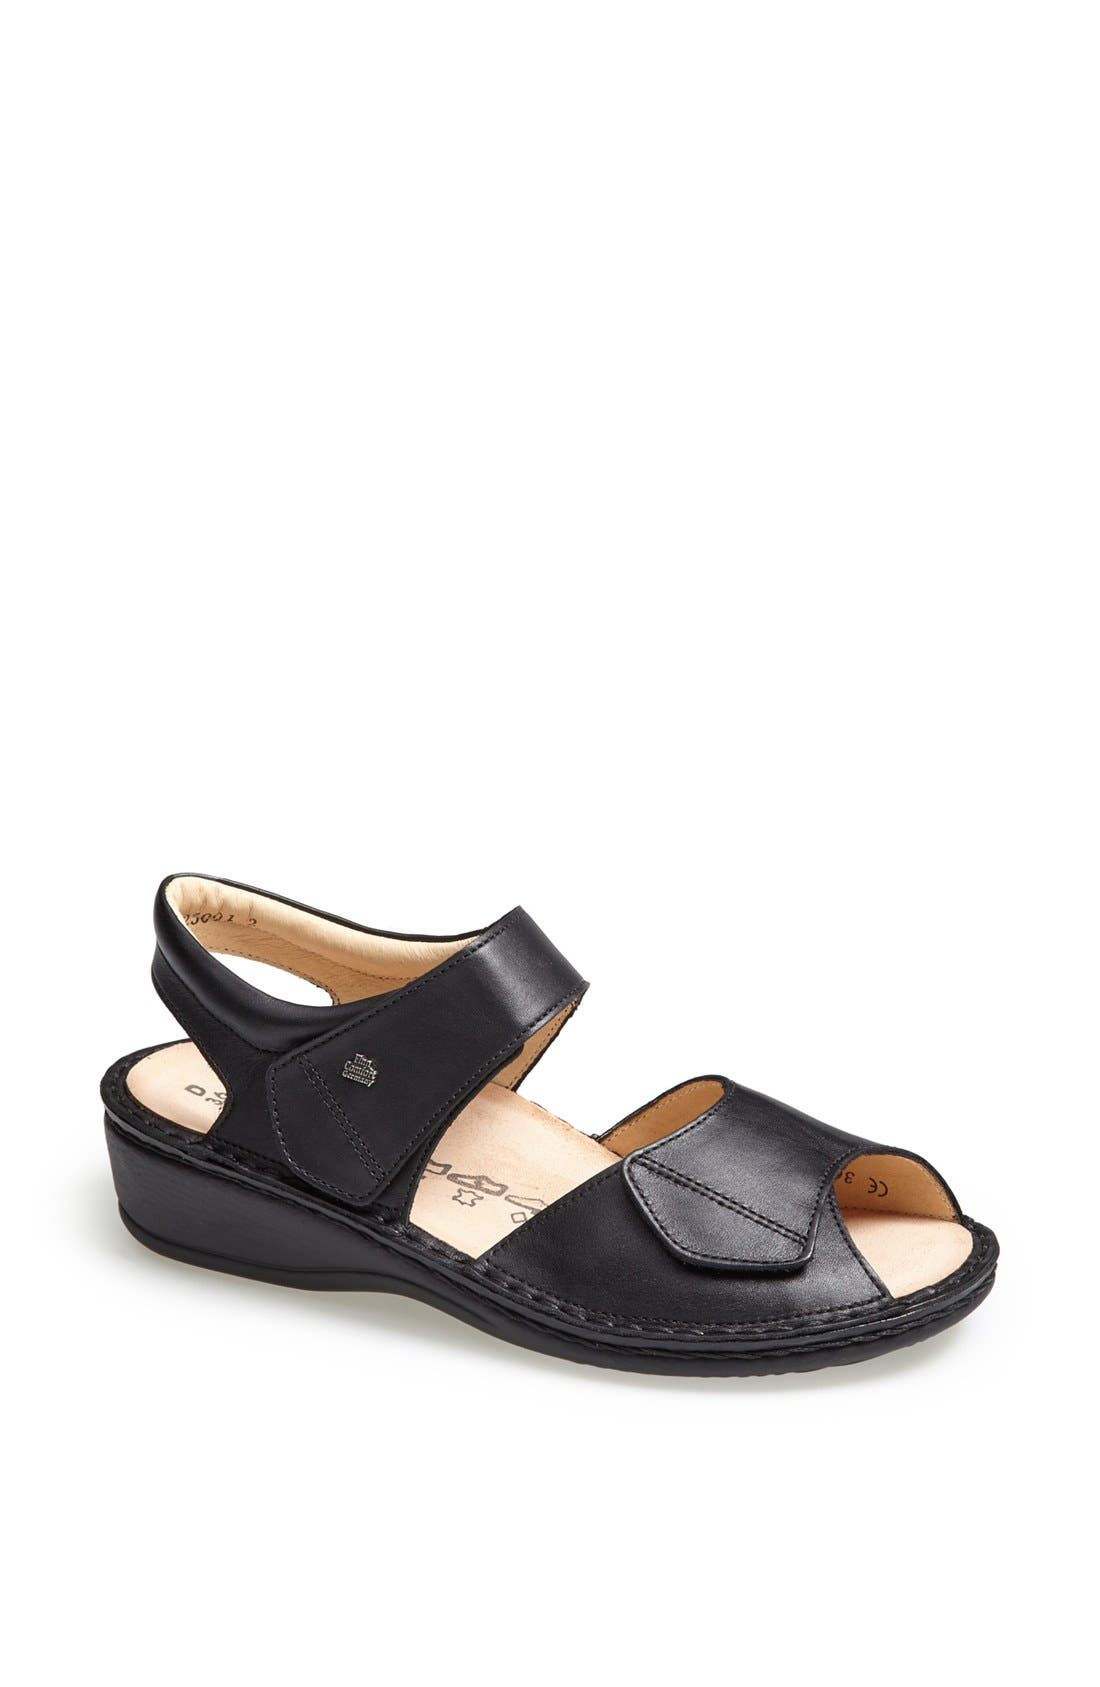 Alternate Image 1 Selected - Finn Comfort 'Faro-S' Leather Sandal